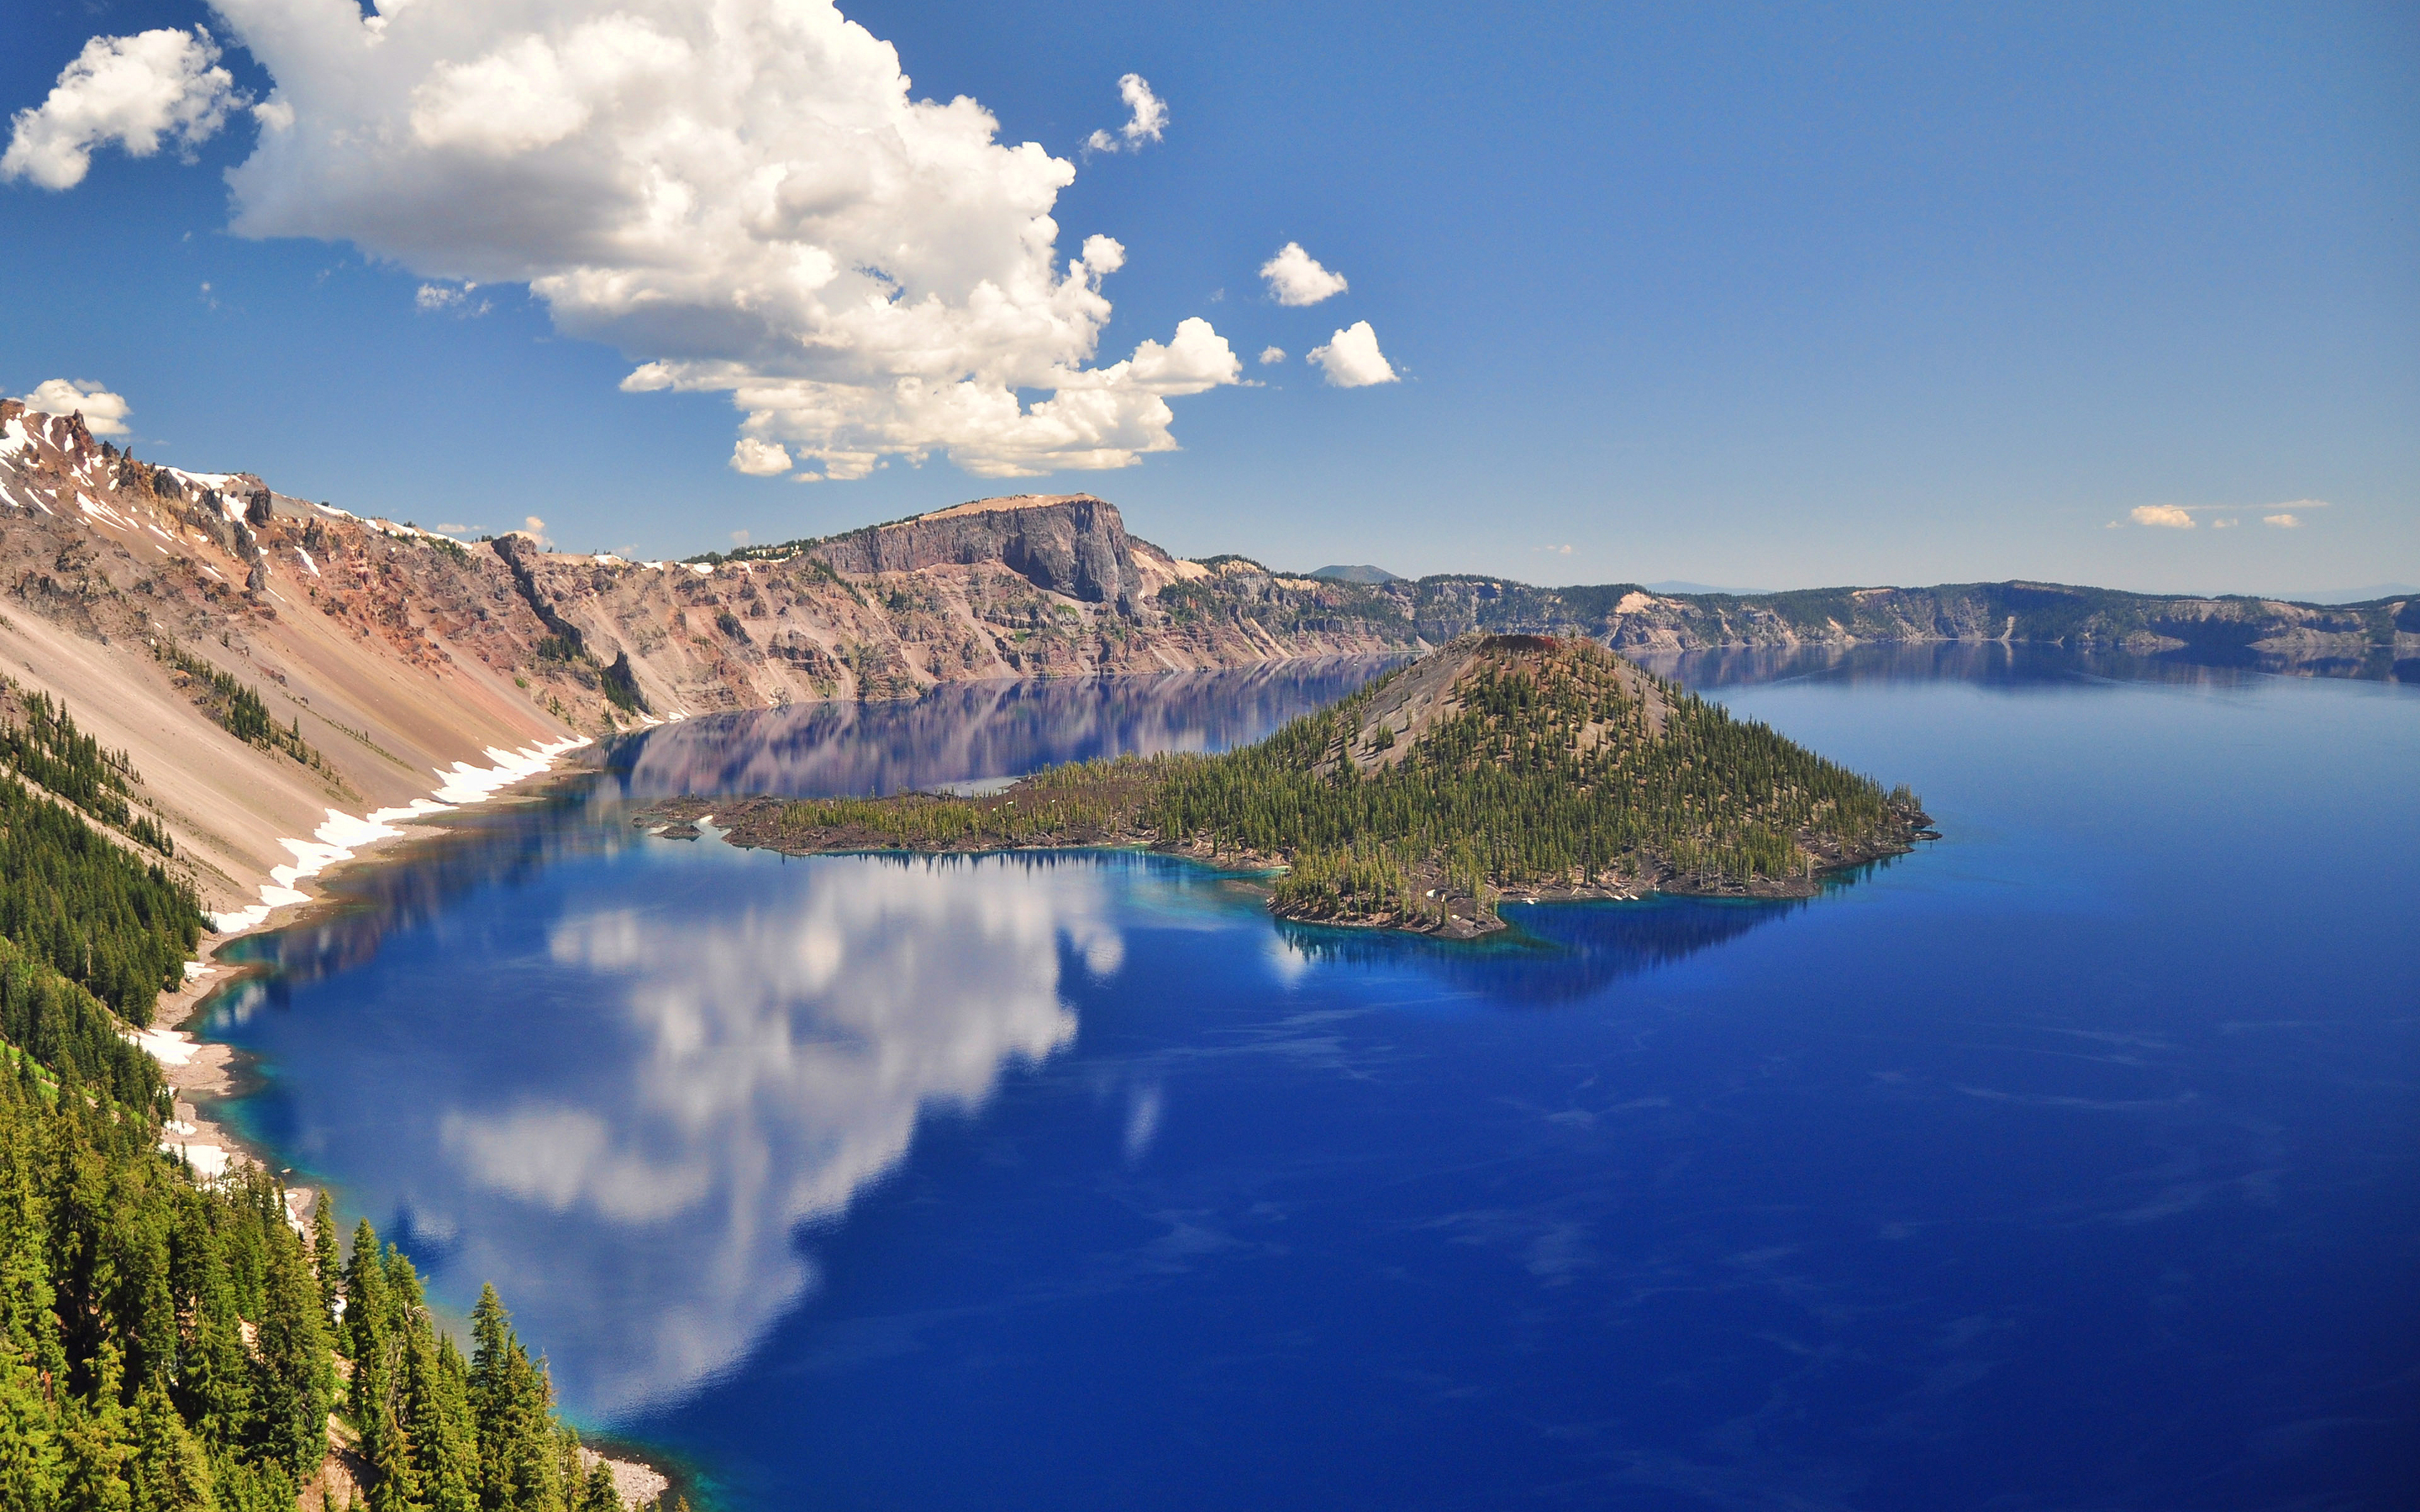 Crater Lake 634.24 Kb